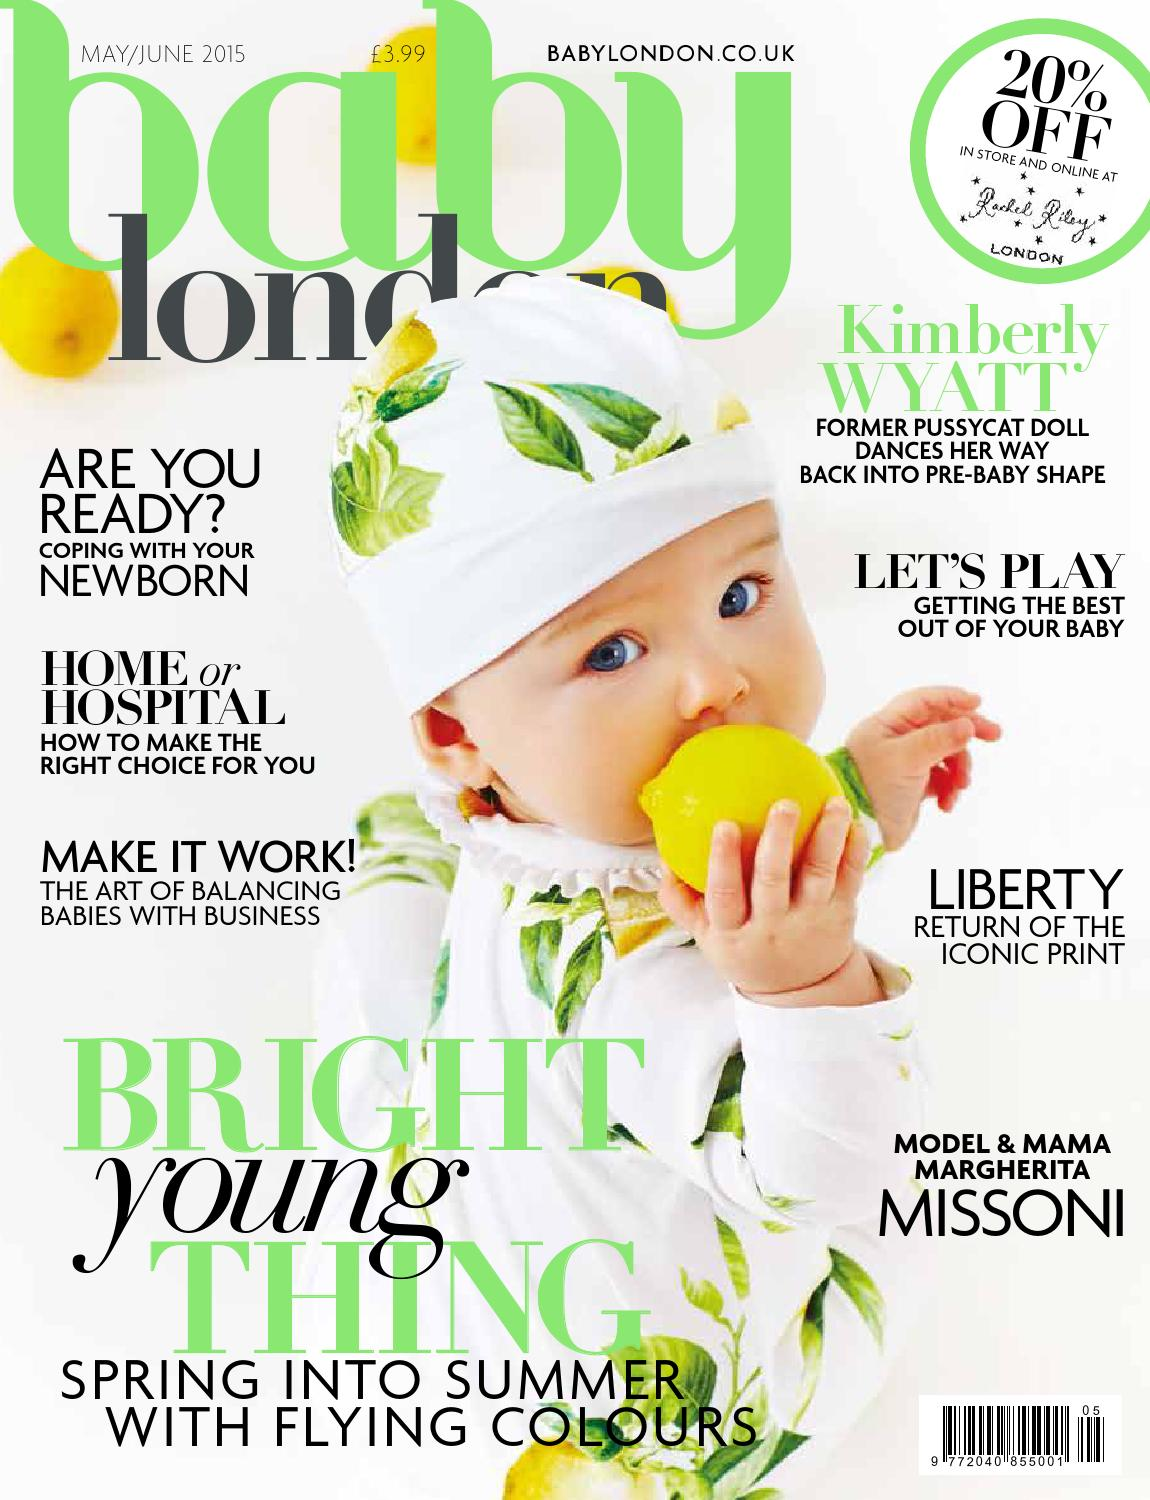 83d5cdf8c Baby London May/June 2015 by The Chelsea Magazine Company - issuu